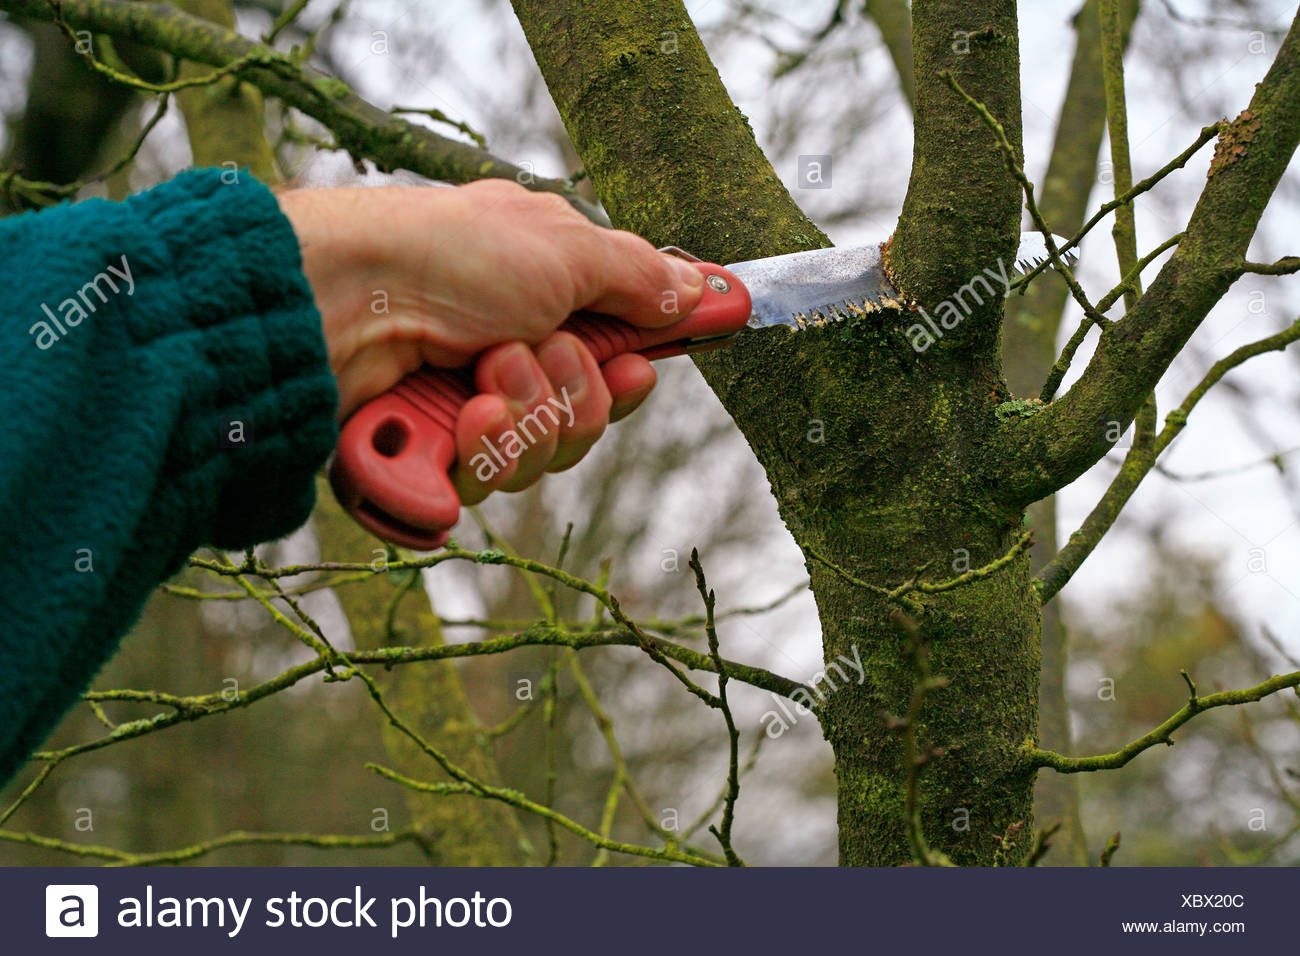 Cutting branches of a fruit tree with a small hand-held saw - Stock Image